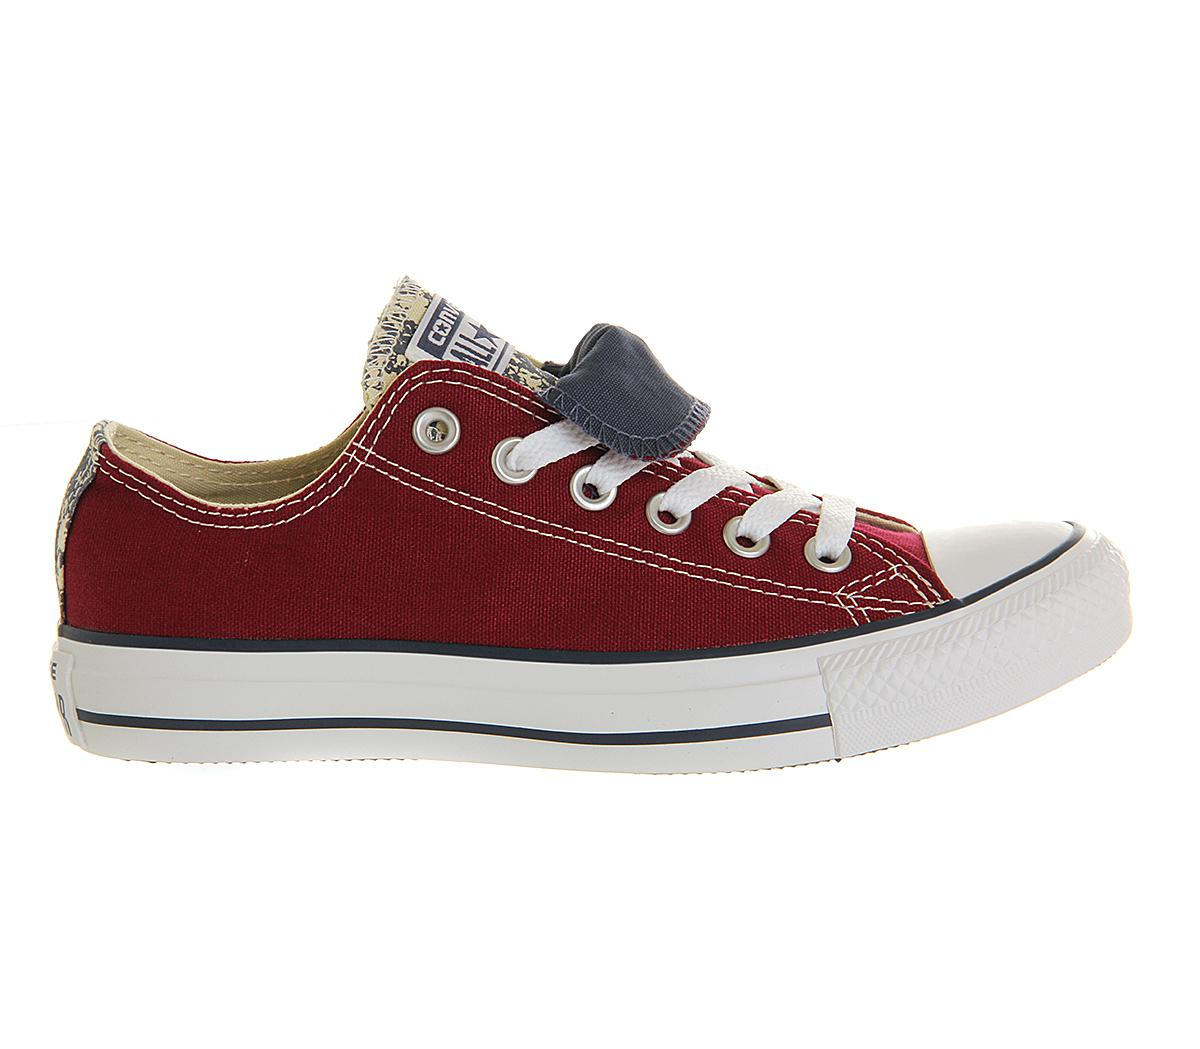 f64123ee1c1d For For Low In Converse Double Double Tongue Men Lyst Allstar Red xwqqOfzA